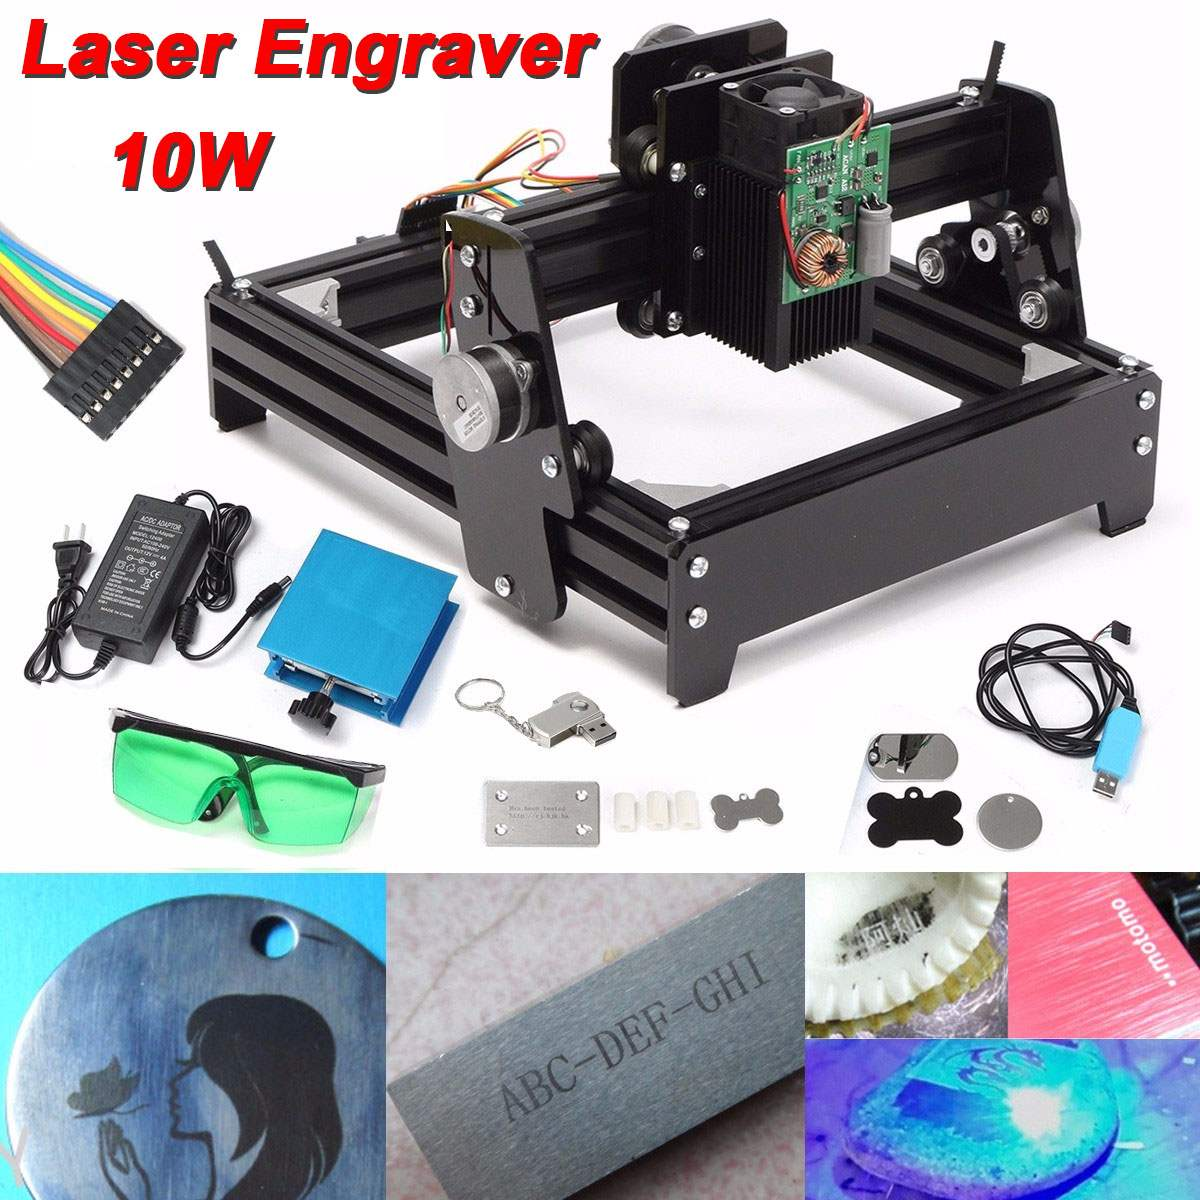 10W Laser USB Desktop 10000mW CNC Laser Engraver DIY Marking Machine For Metal Stone Wood Engraving Area 14 x 20cm blue laser head engraving module wood marking diode 2 5w glasses circuit board for engraver wood metal plastic carving mayitr